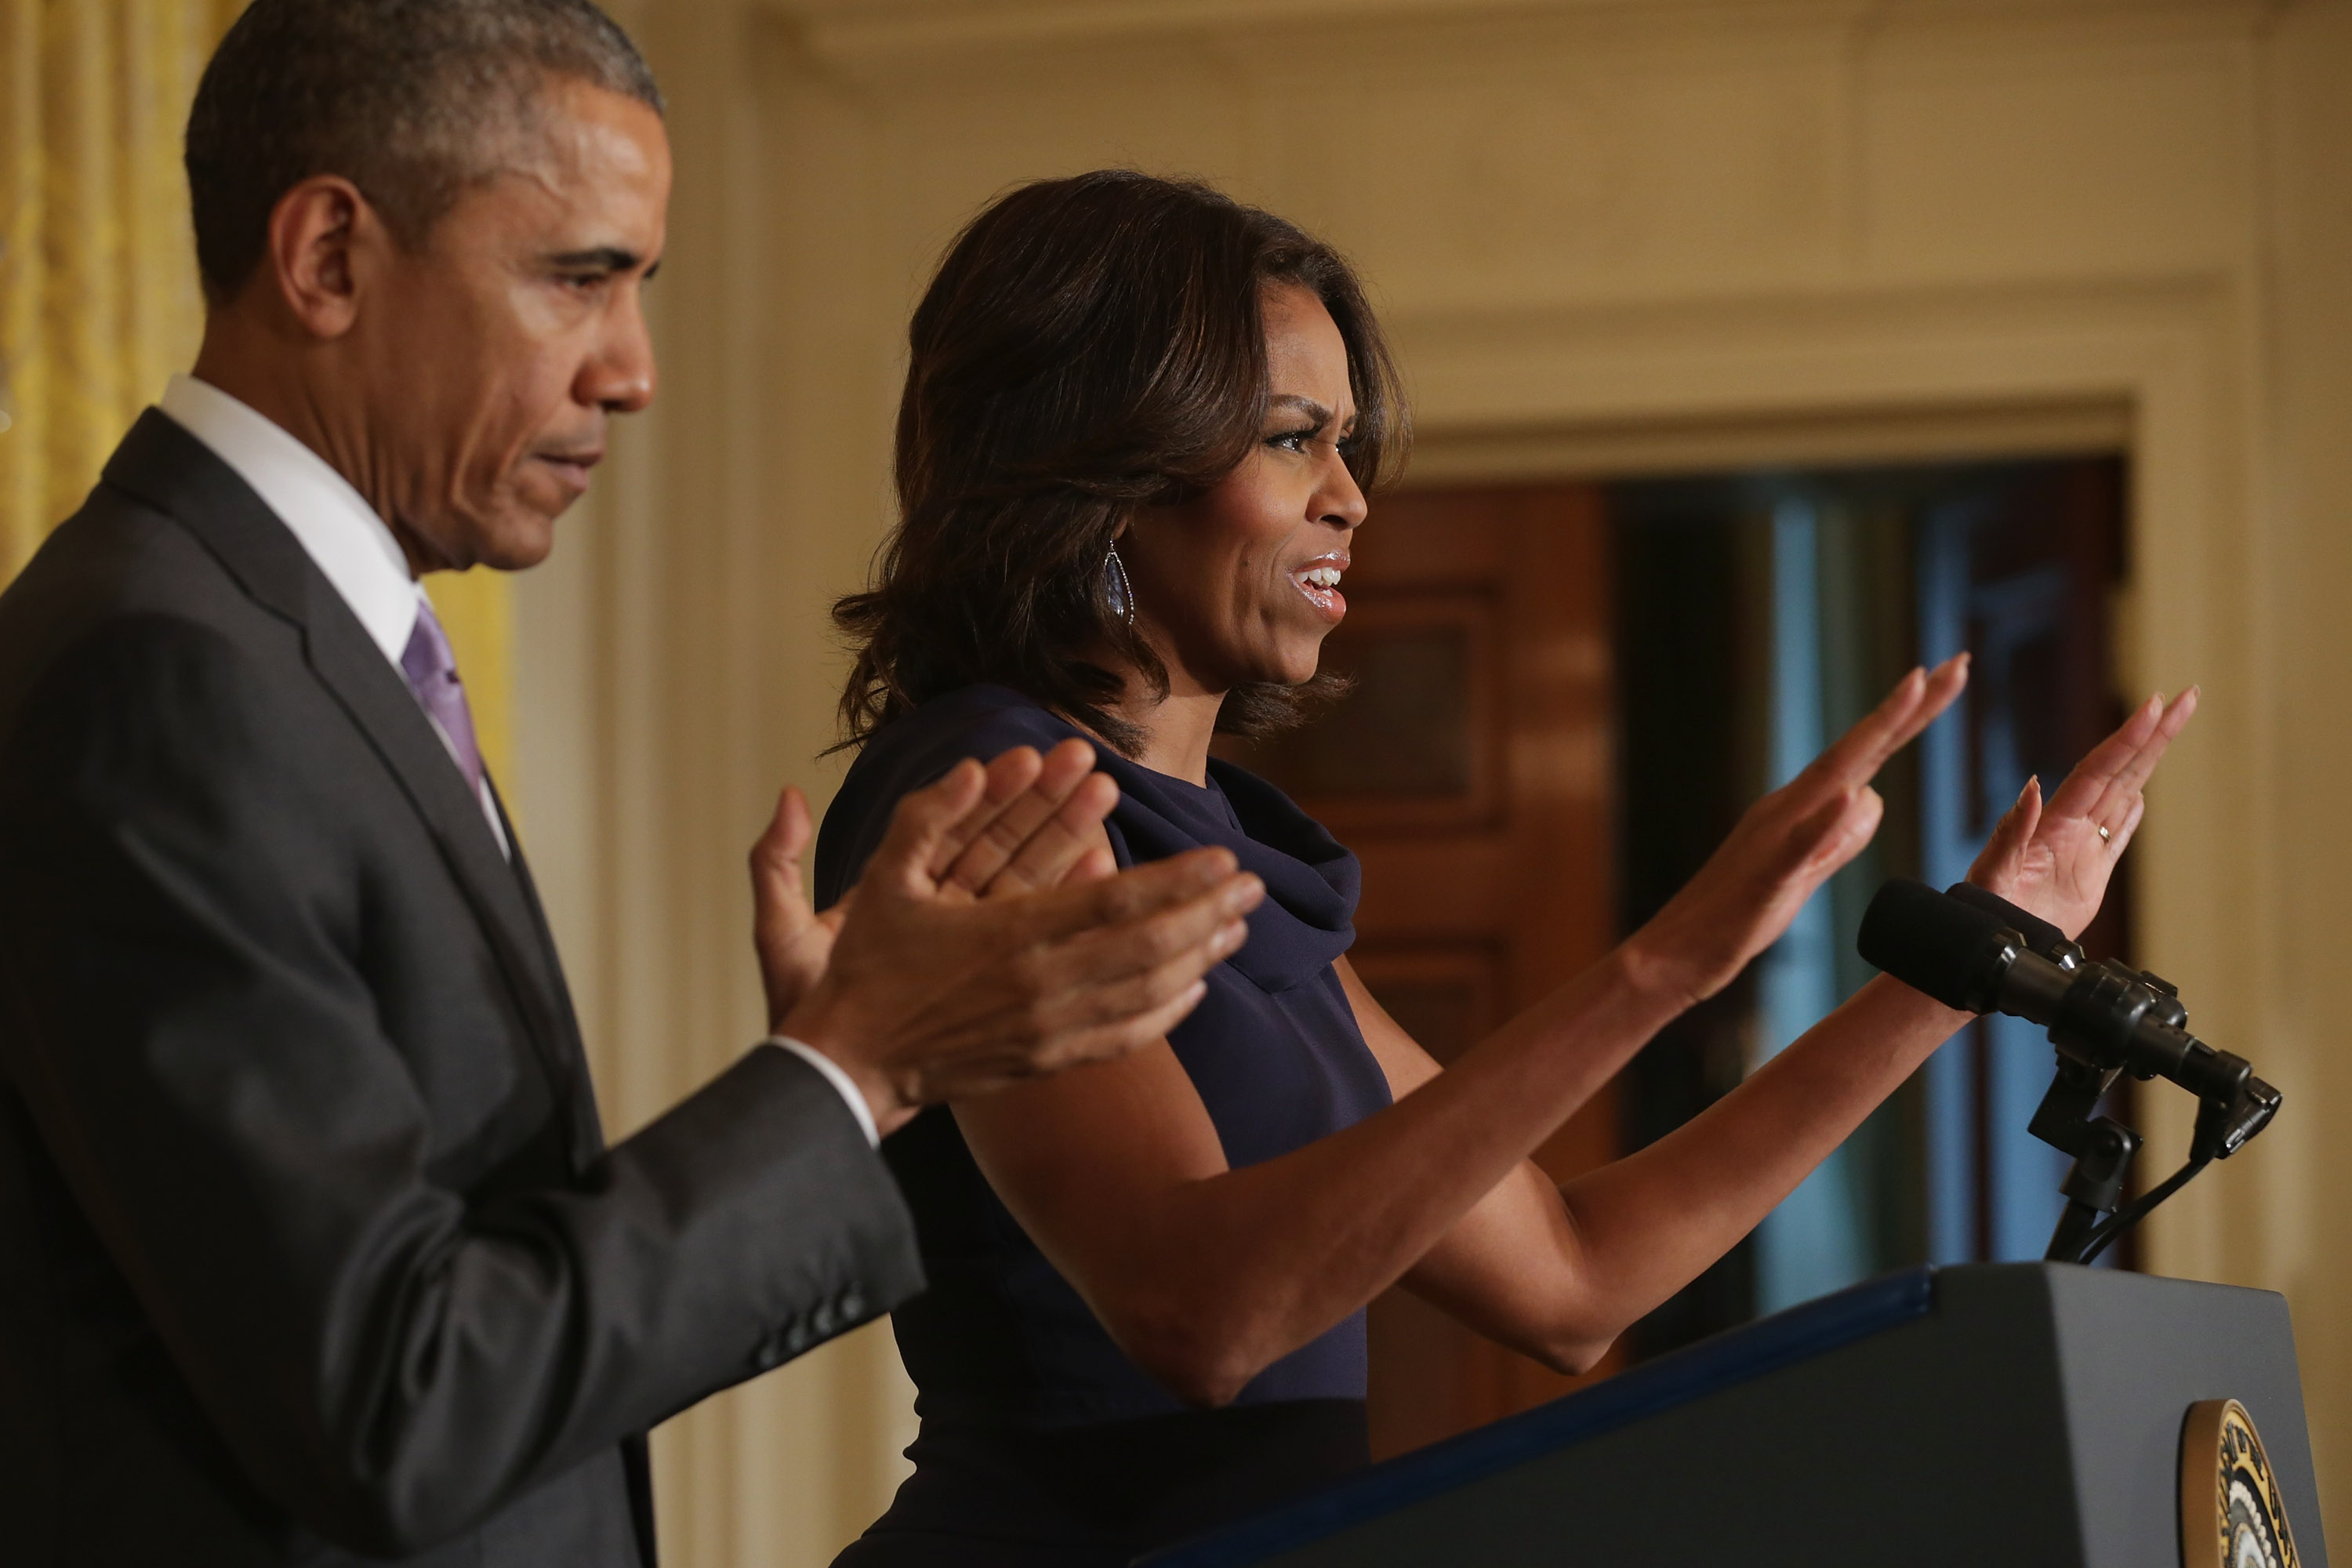 President And Mrs. Obama Discuss Efforts To Help Adolescent Girls Worldwide